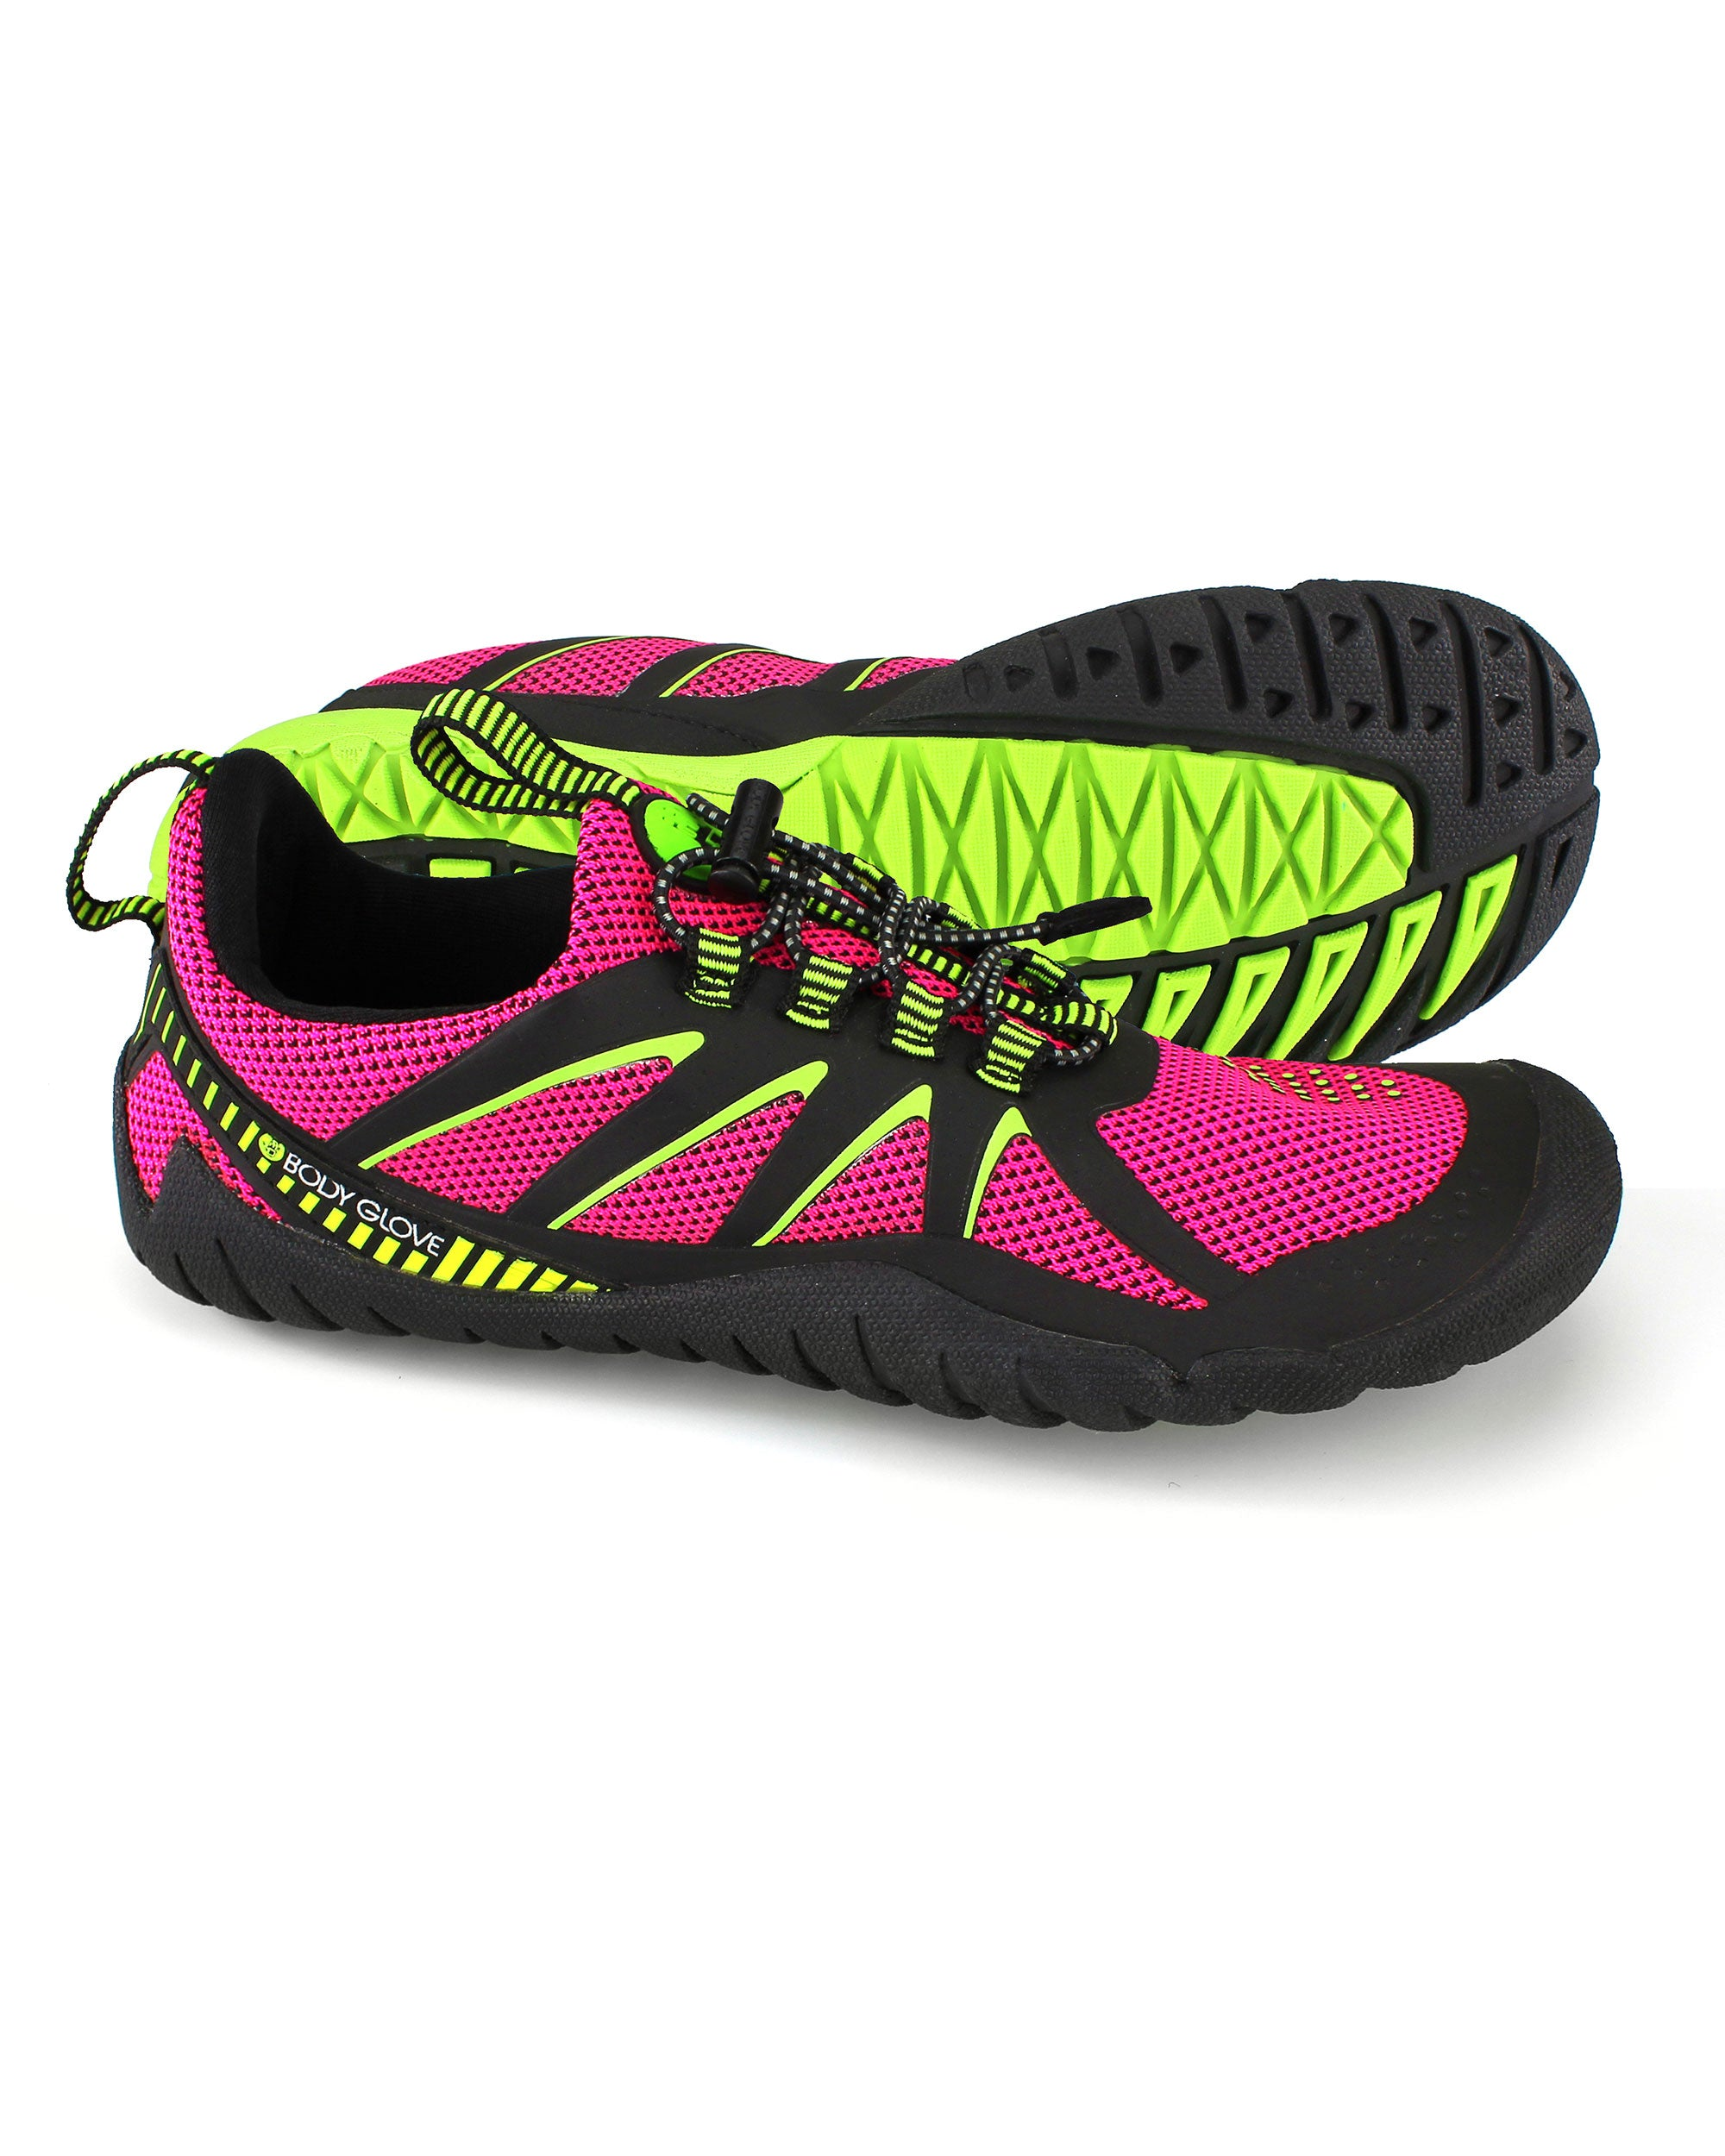 a000867f2eab Hover or Click to Enlarge. Women s Hydra Water Shoes - Neon Pink Neon Green